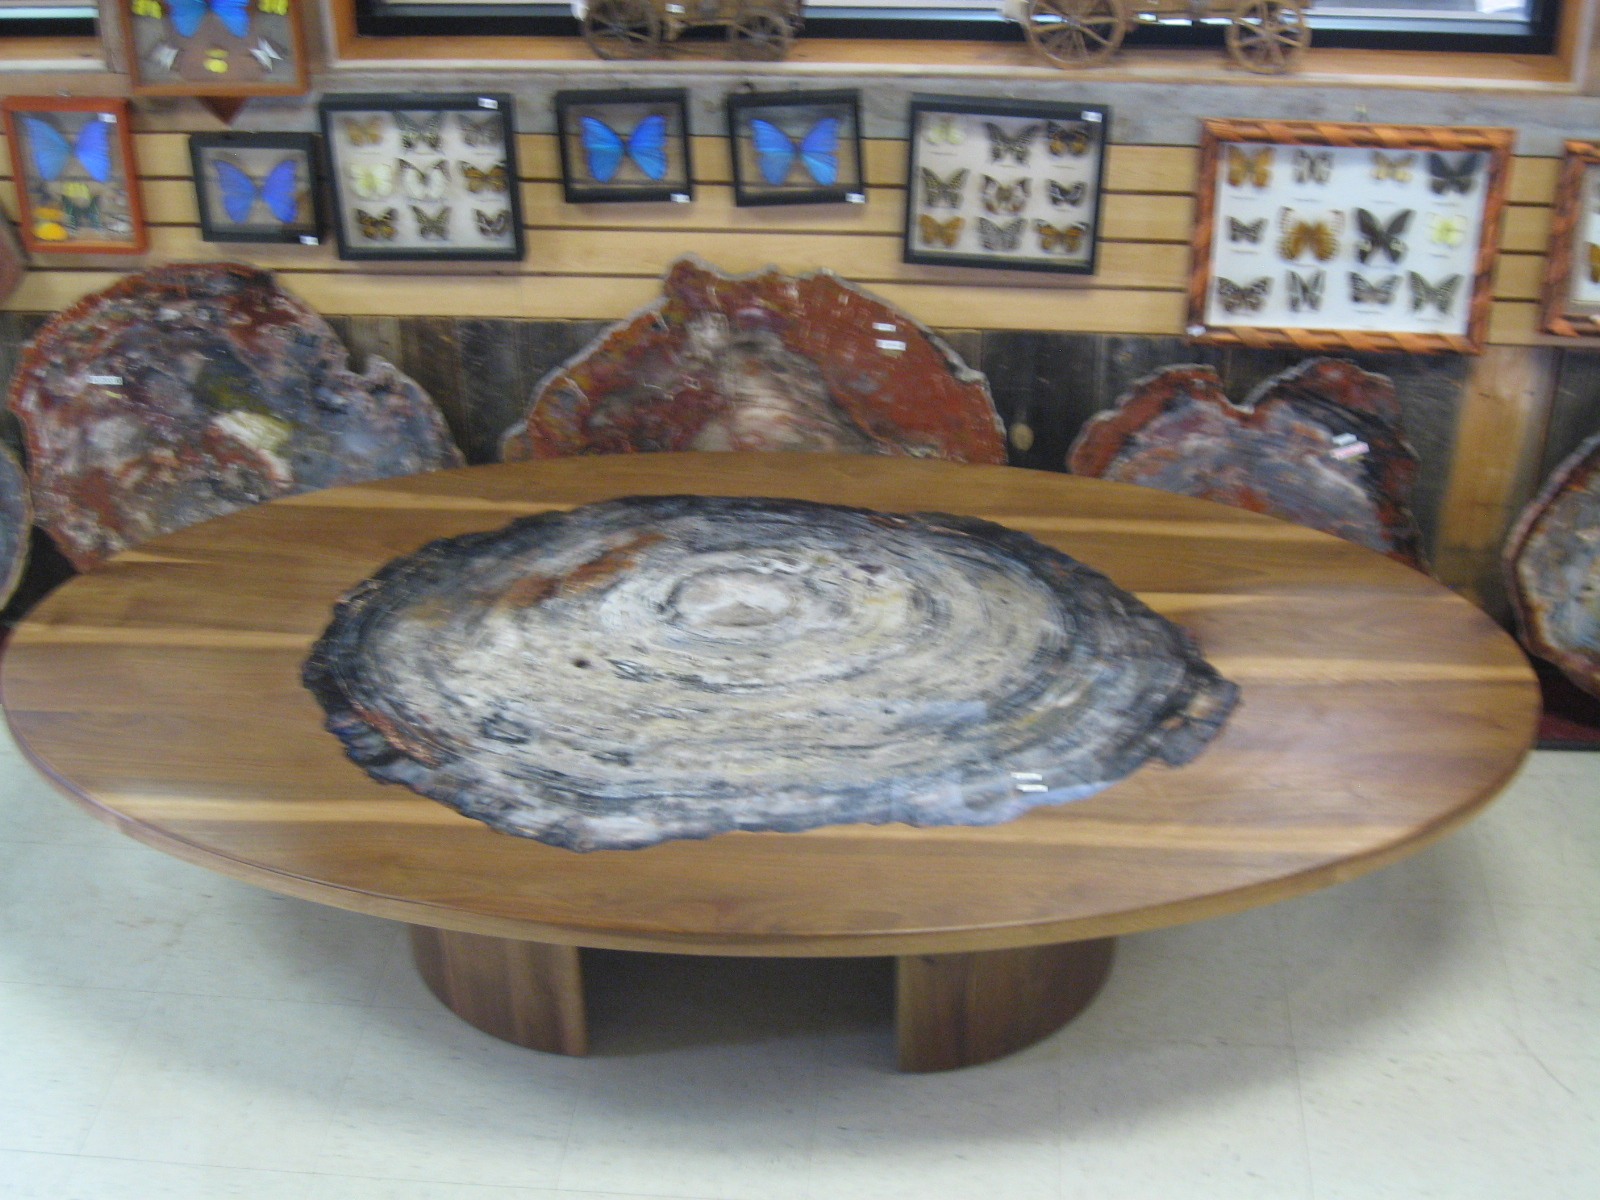 Incroyable Jim Grayu0027s Petrified Wood Co.